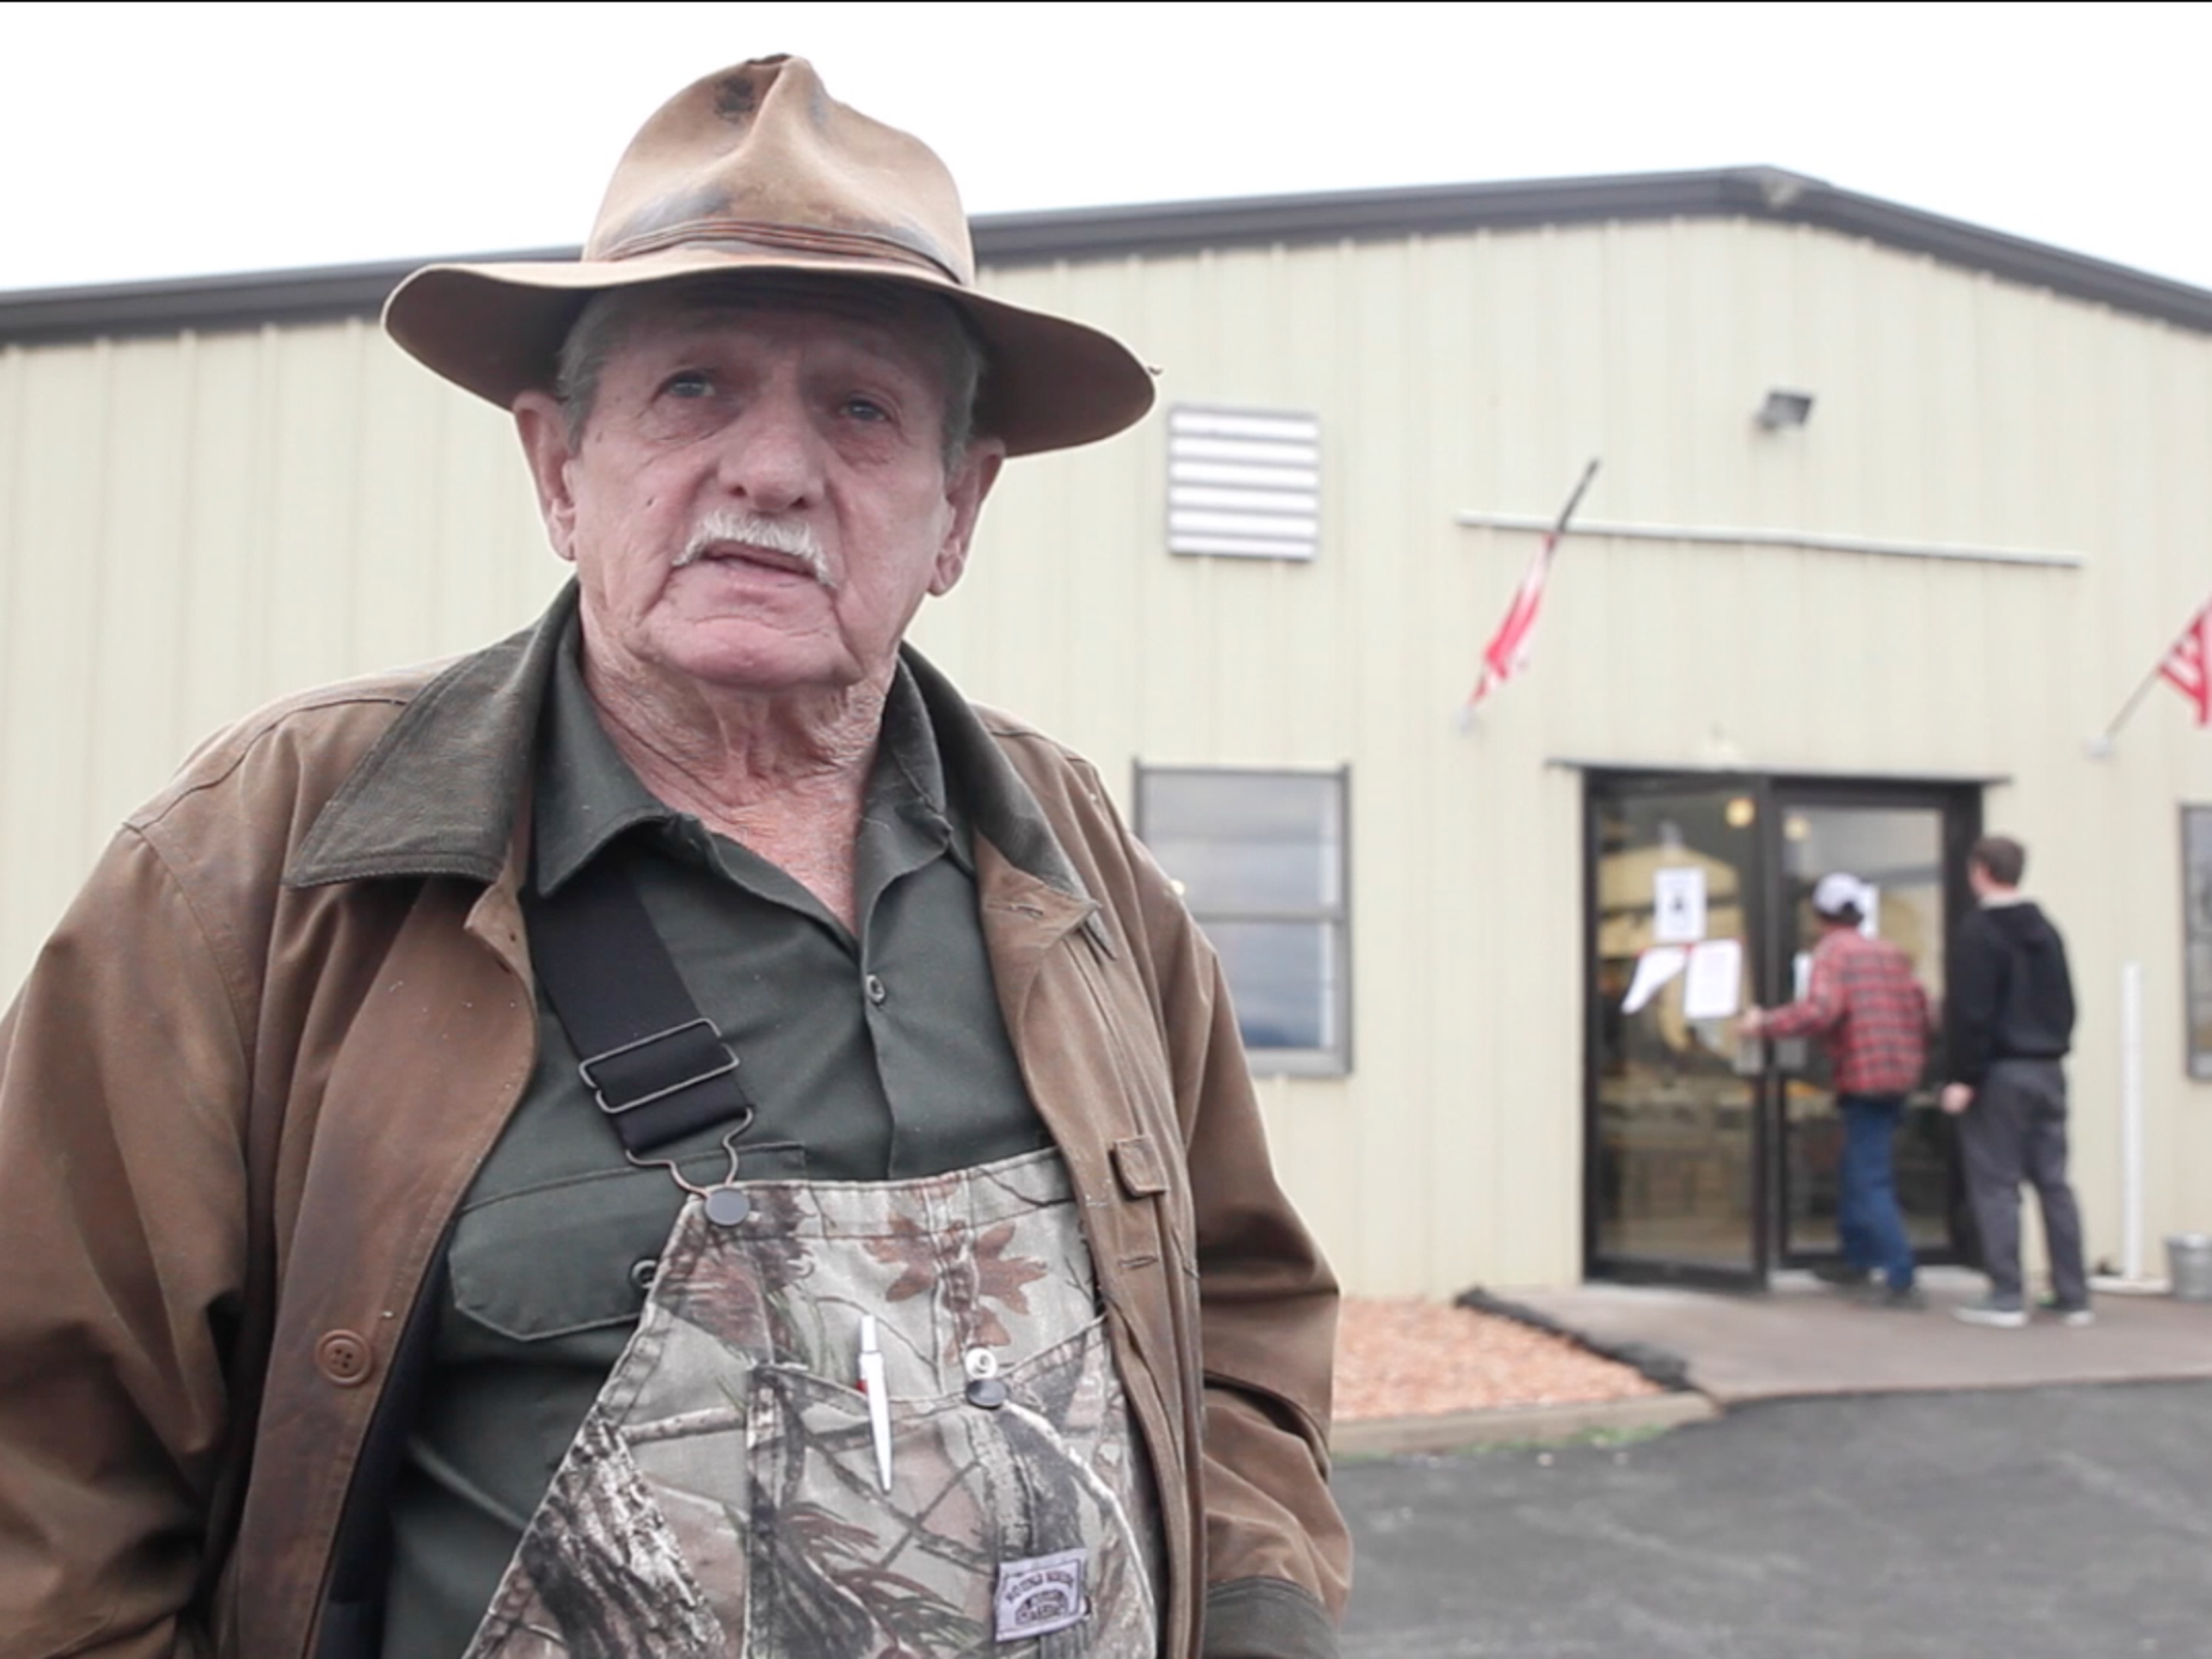 Don Shumaker, president of the Virginia Trappers Association, conducts an interview with The News Leader outside Augusta Expo during the organizations annual fur auction on Saturday, March 14, 2015.